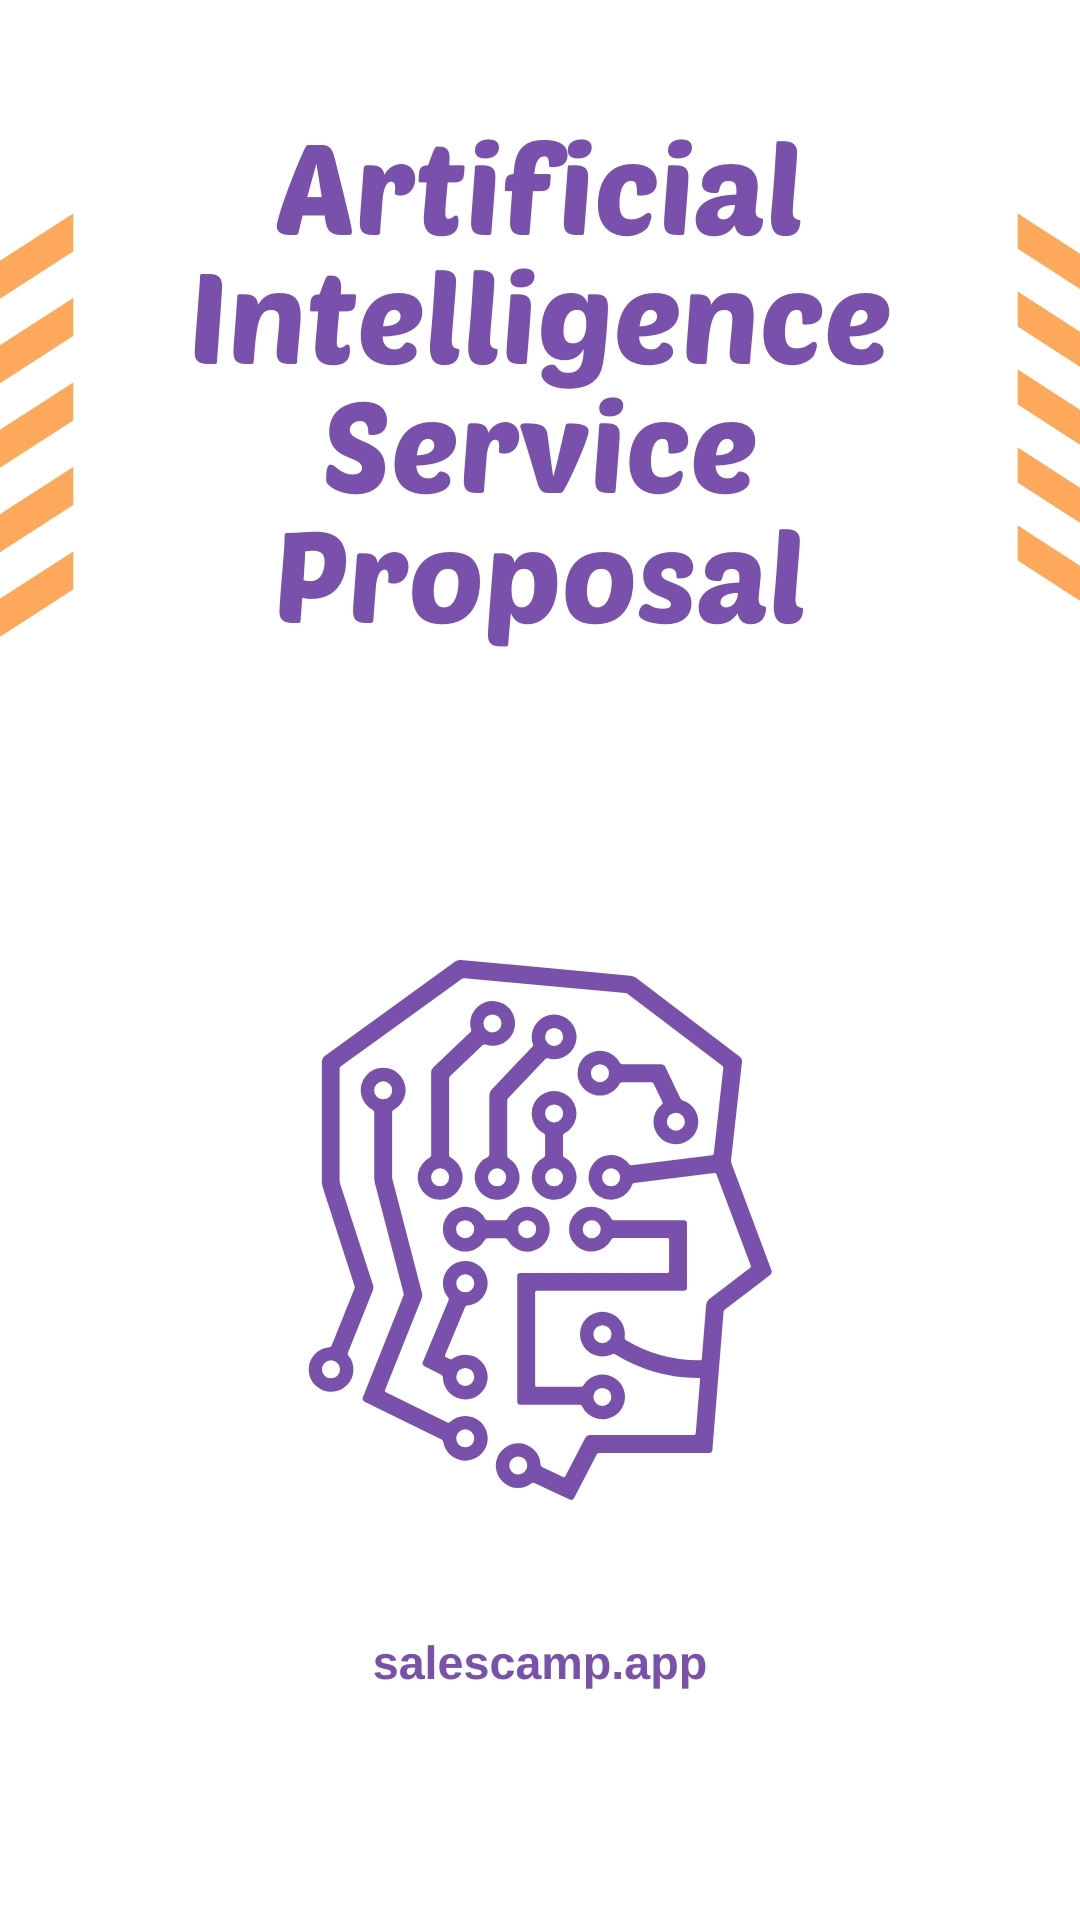 Artificial Intelligence Service Proposal